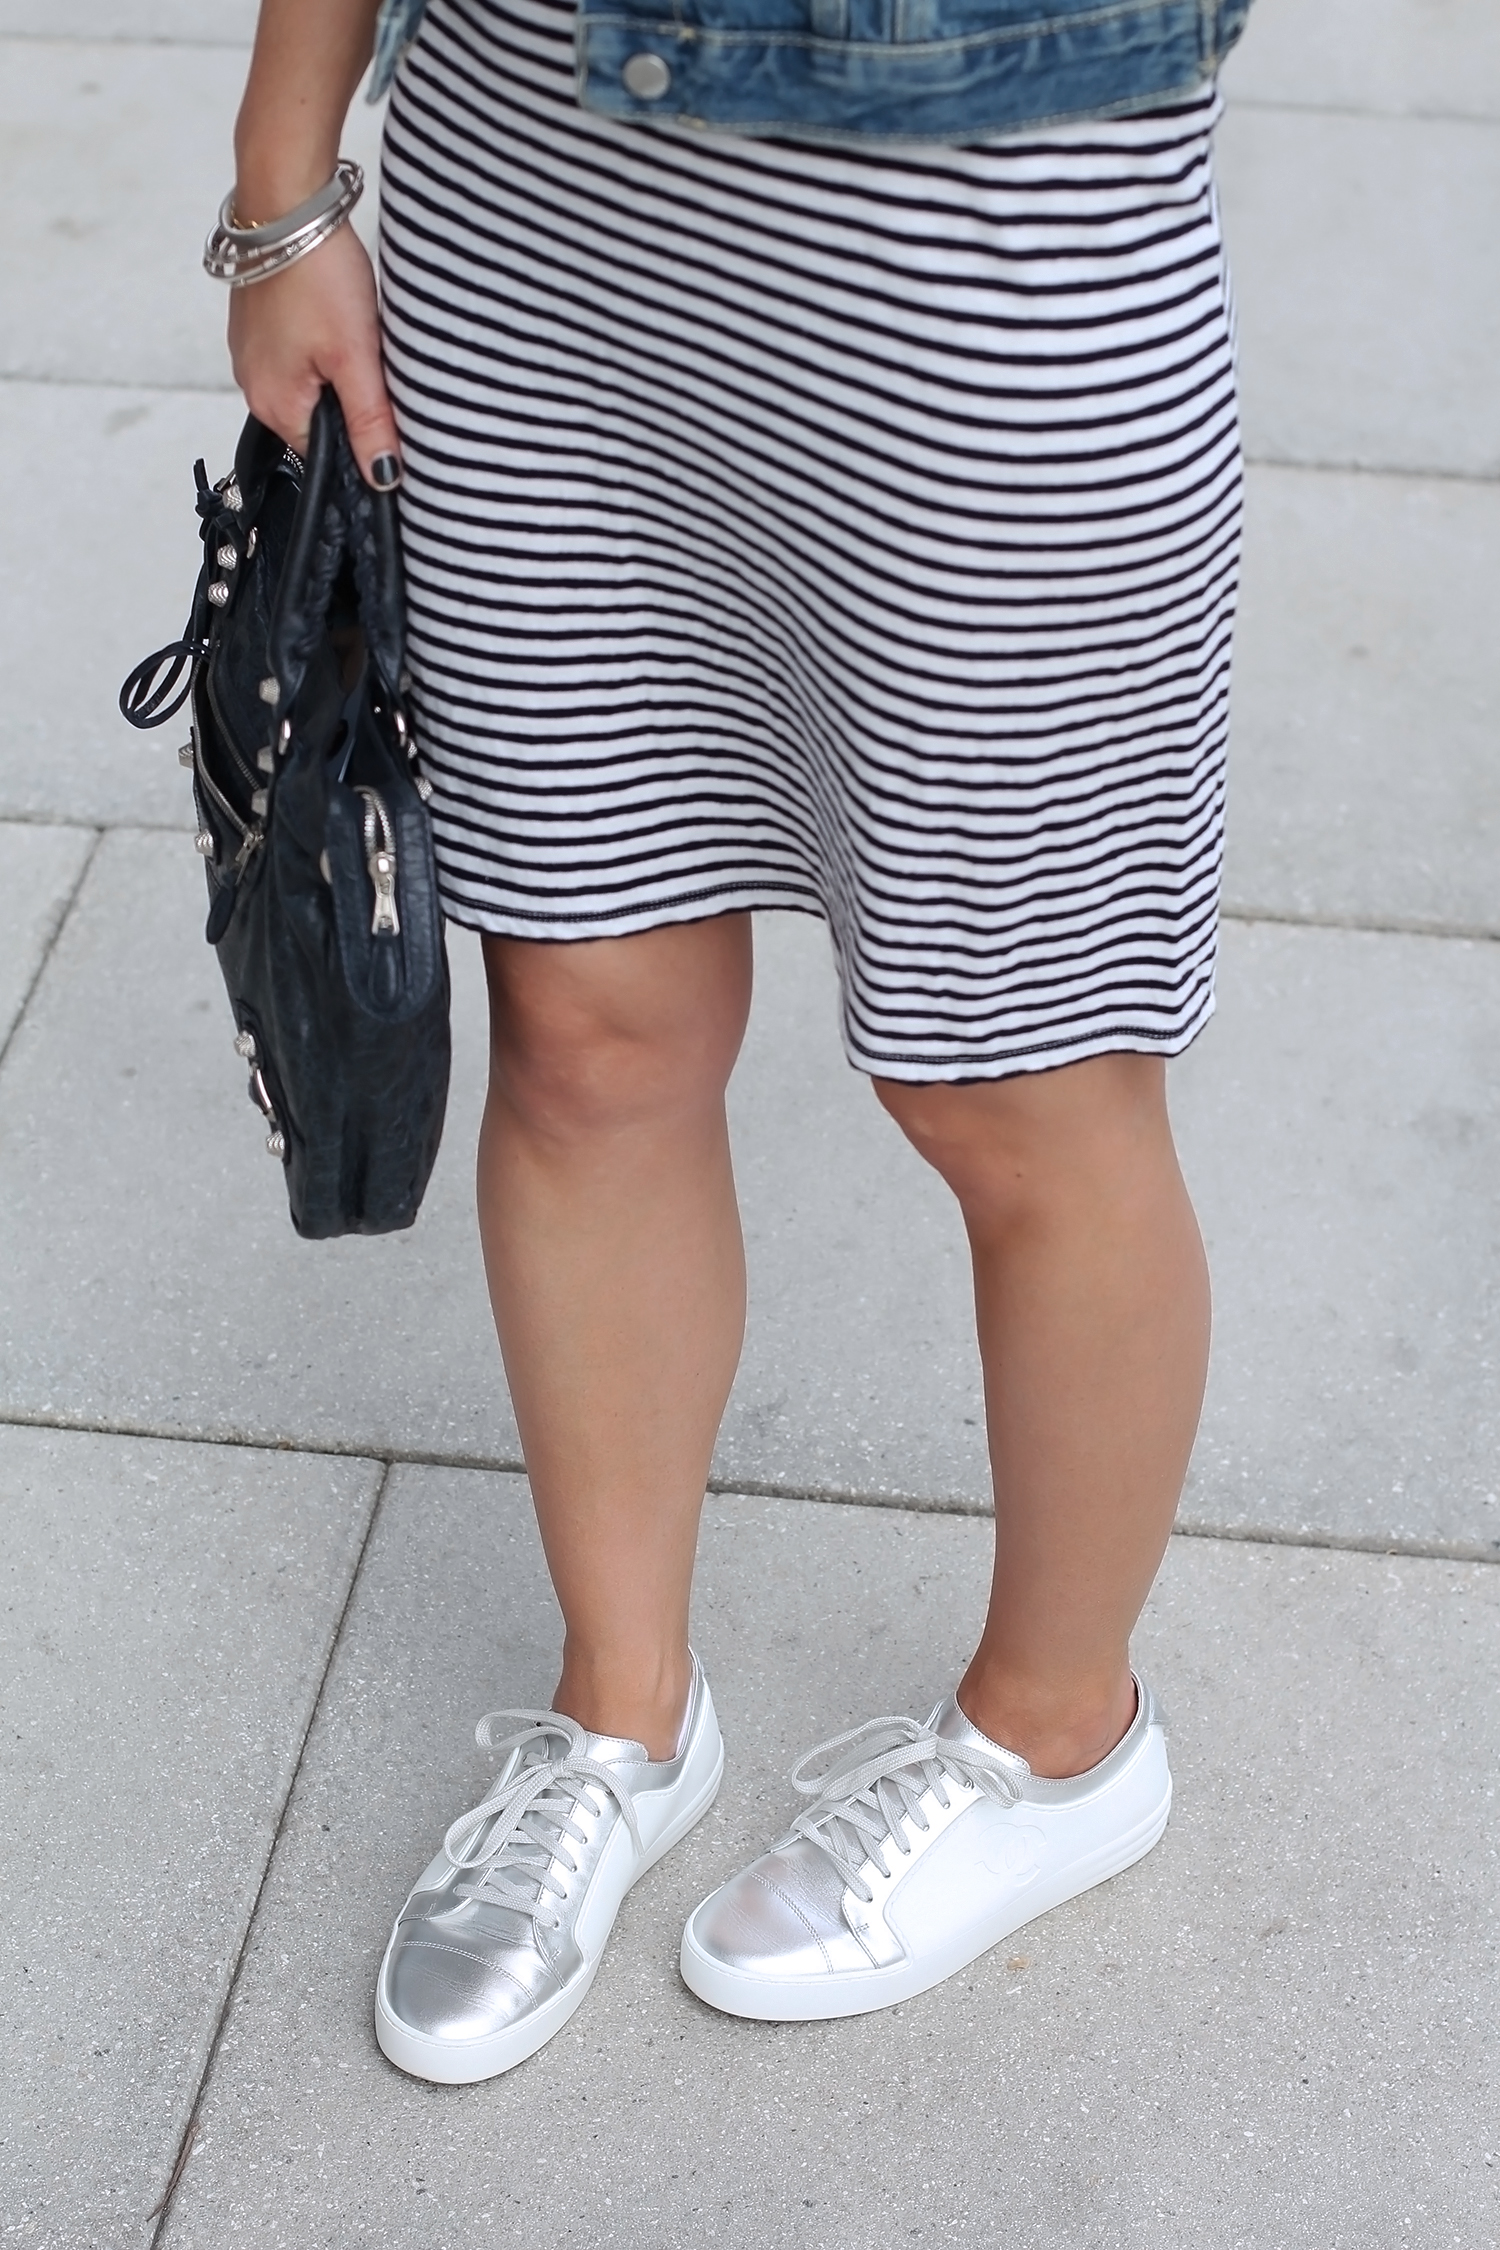 Chanel White and Silver Sneakers